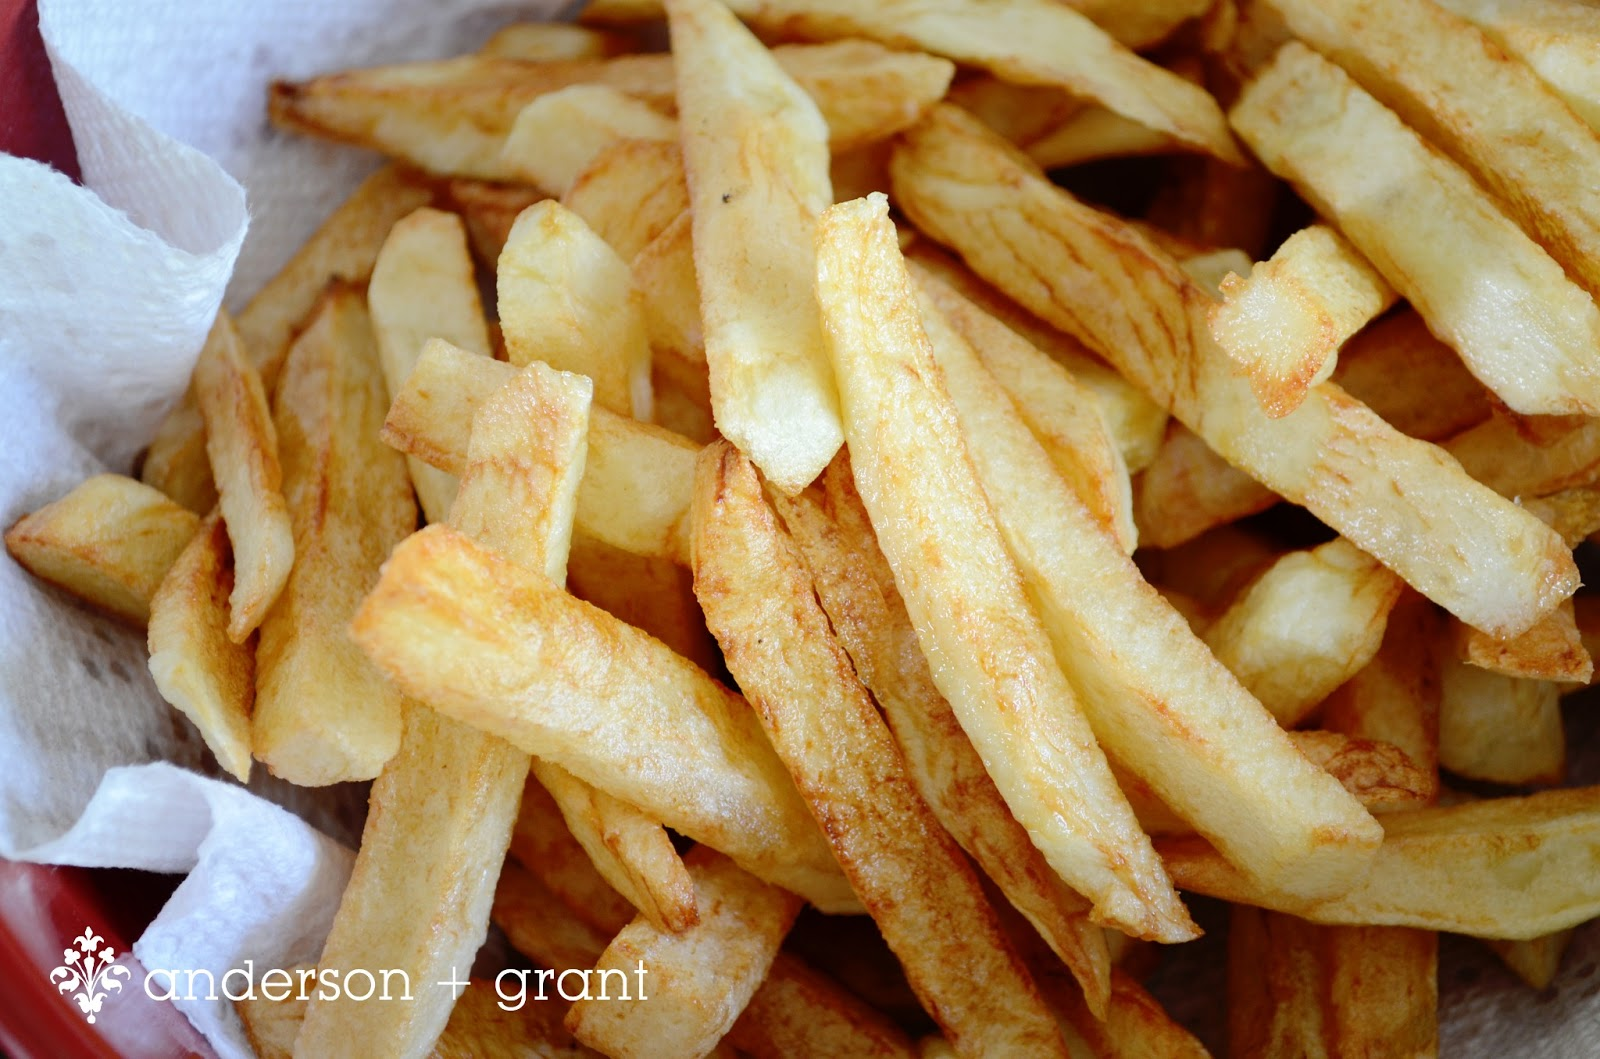 Homemade french fries anderson grant homemade french fries solutioingenieria Images